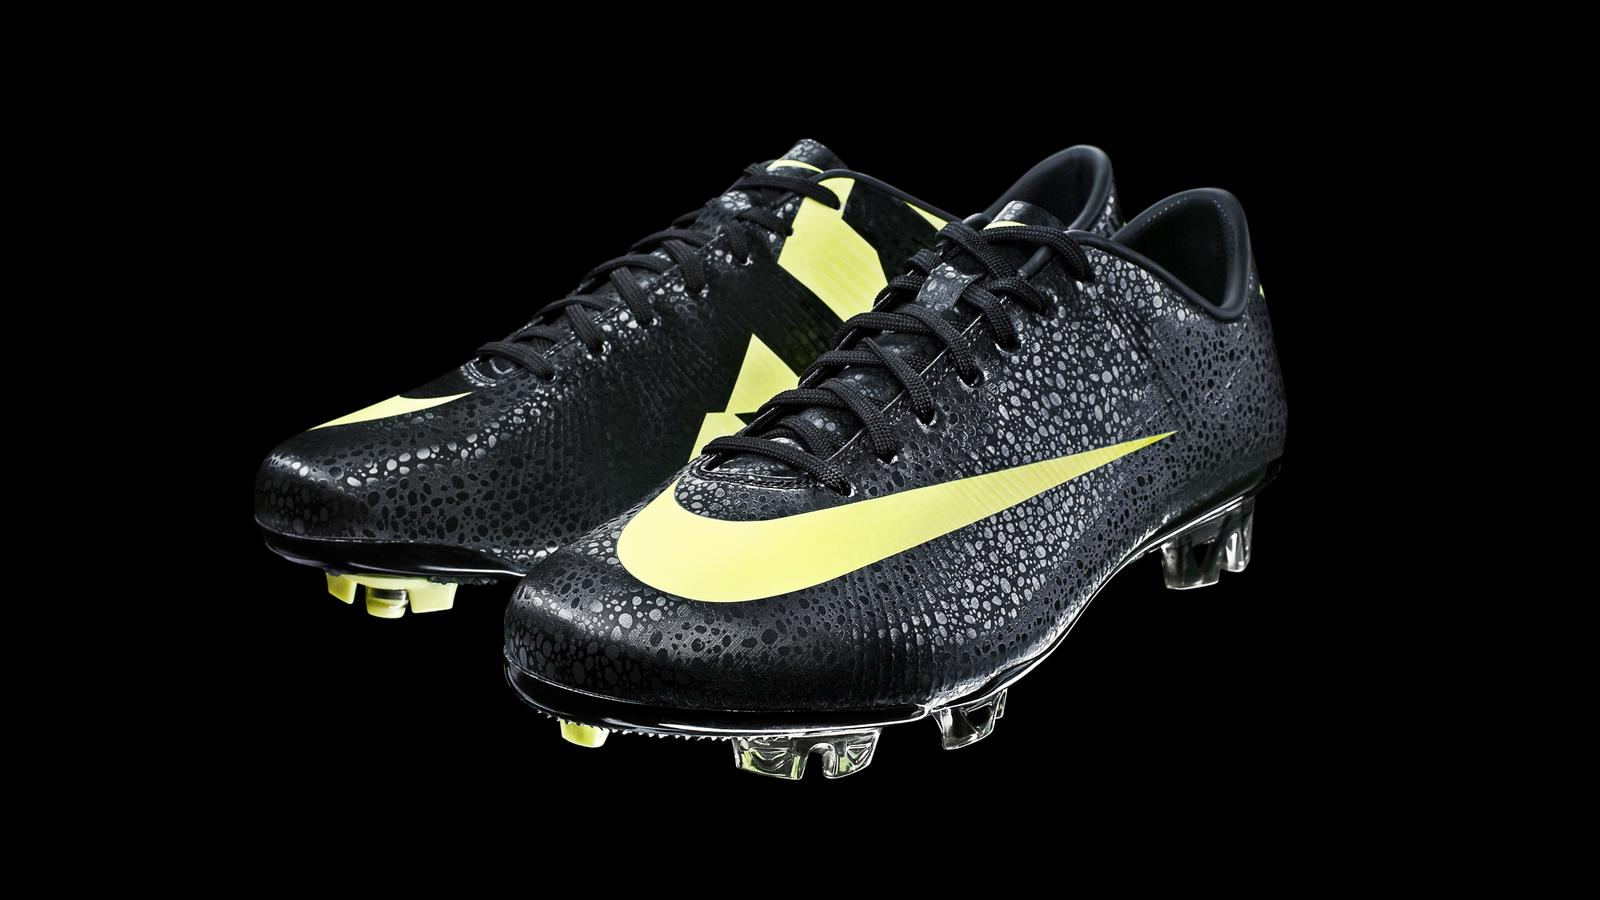 M31_NIKE _VAPOR_SUPERFLY 35274_Black